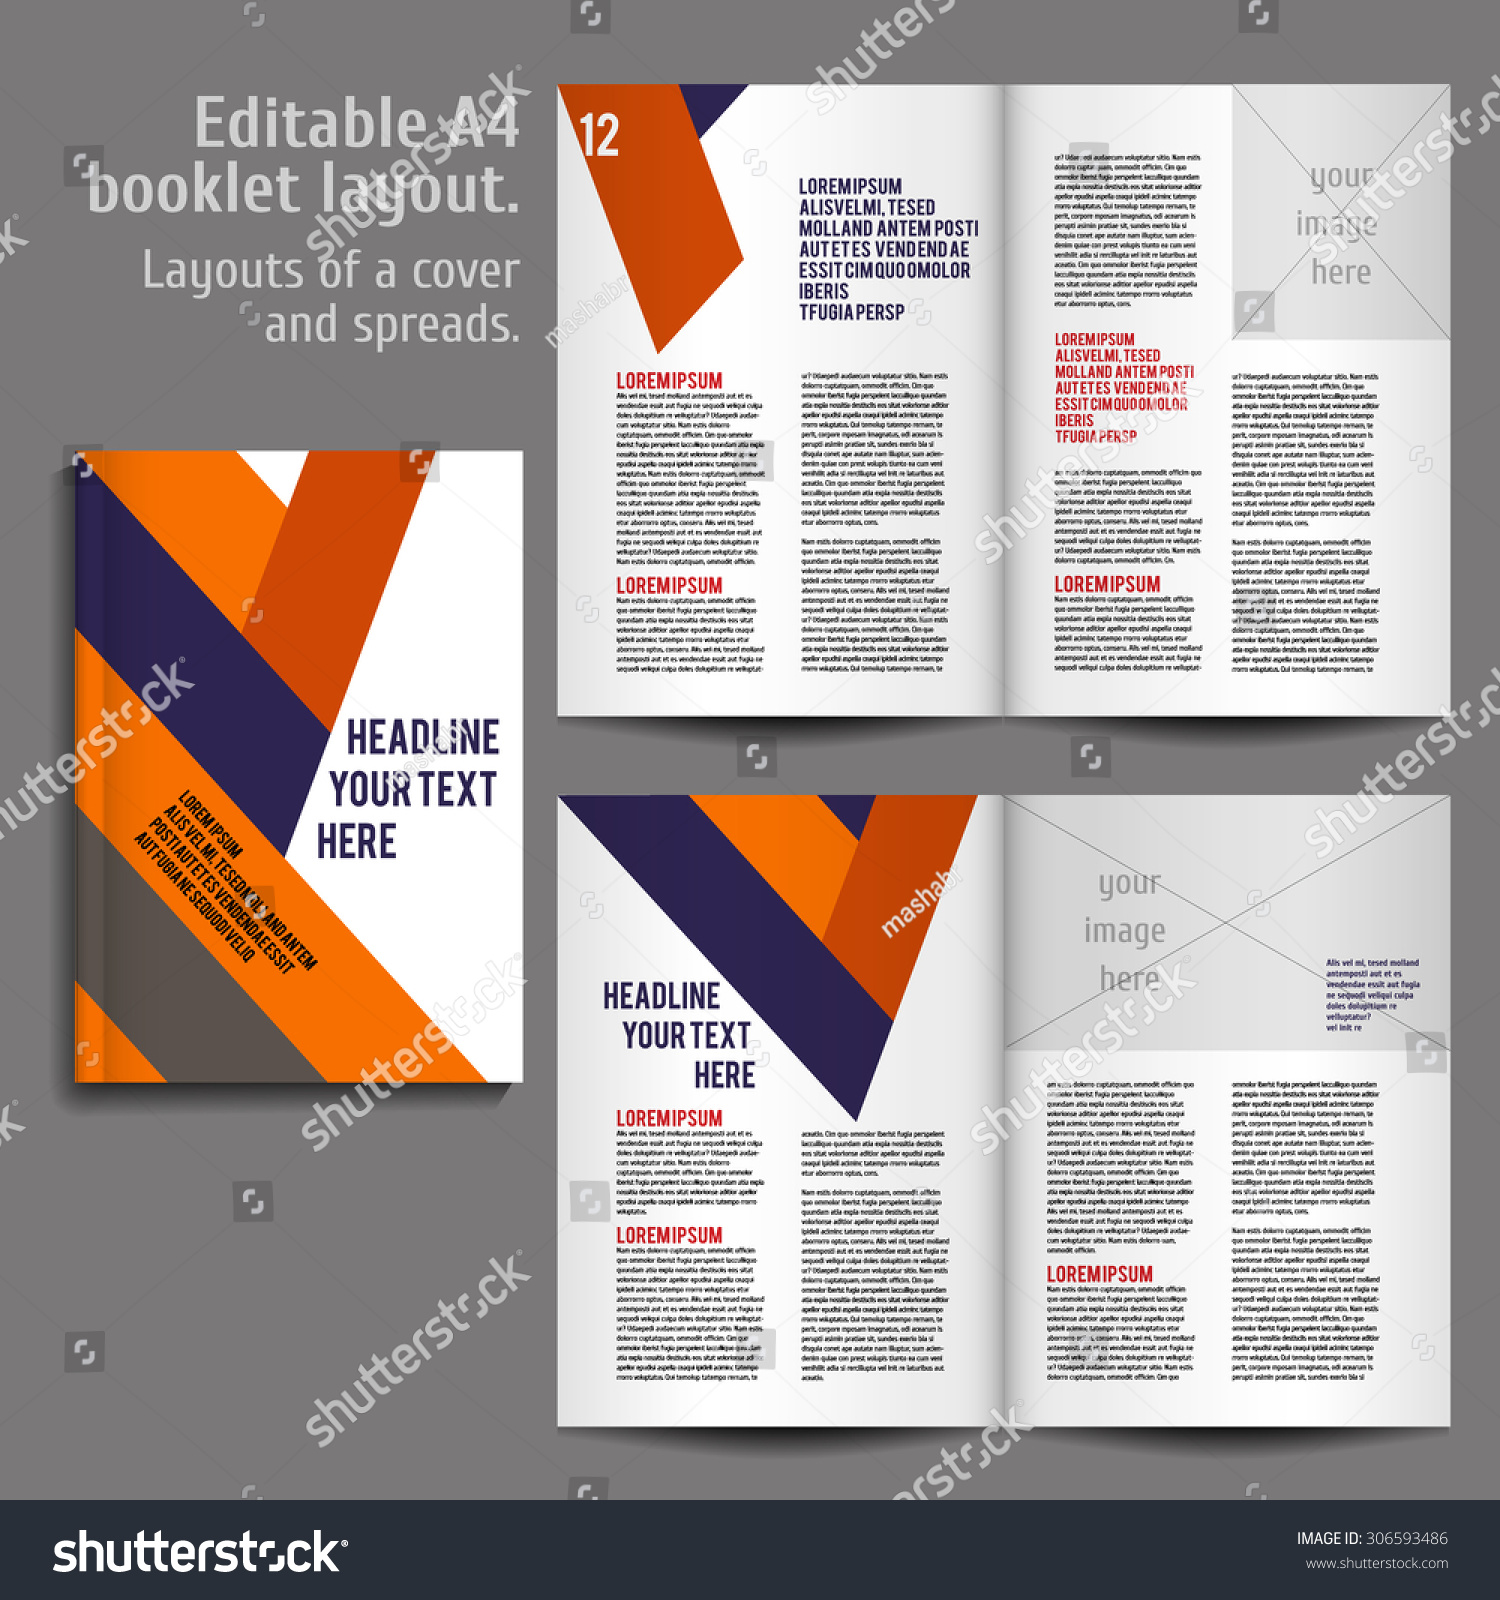 Book Cover Layout Questions : A book geometric abstract layout design stock vector